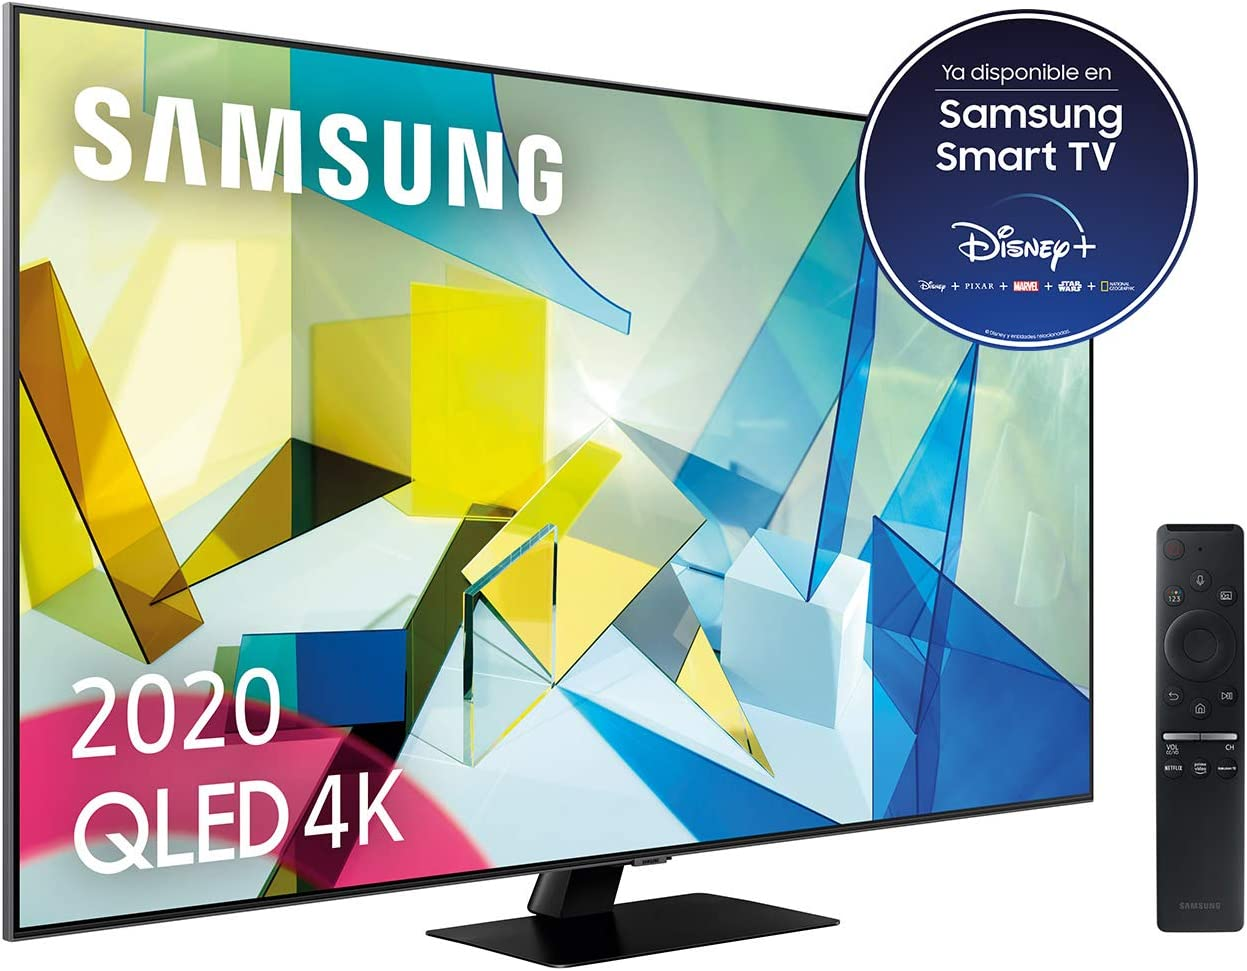 Samsung QLED 4K 2020 65Q80T - Smart TV de 65